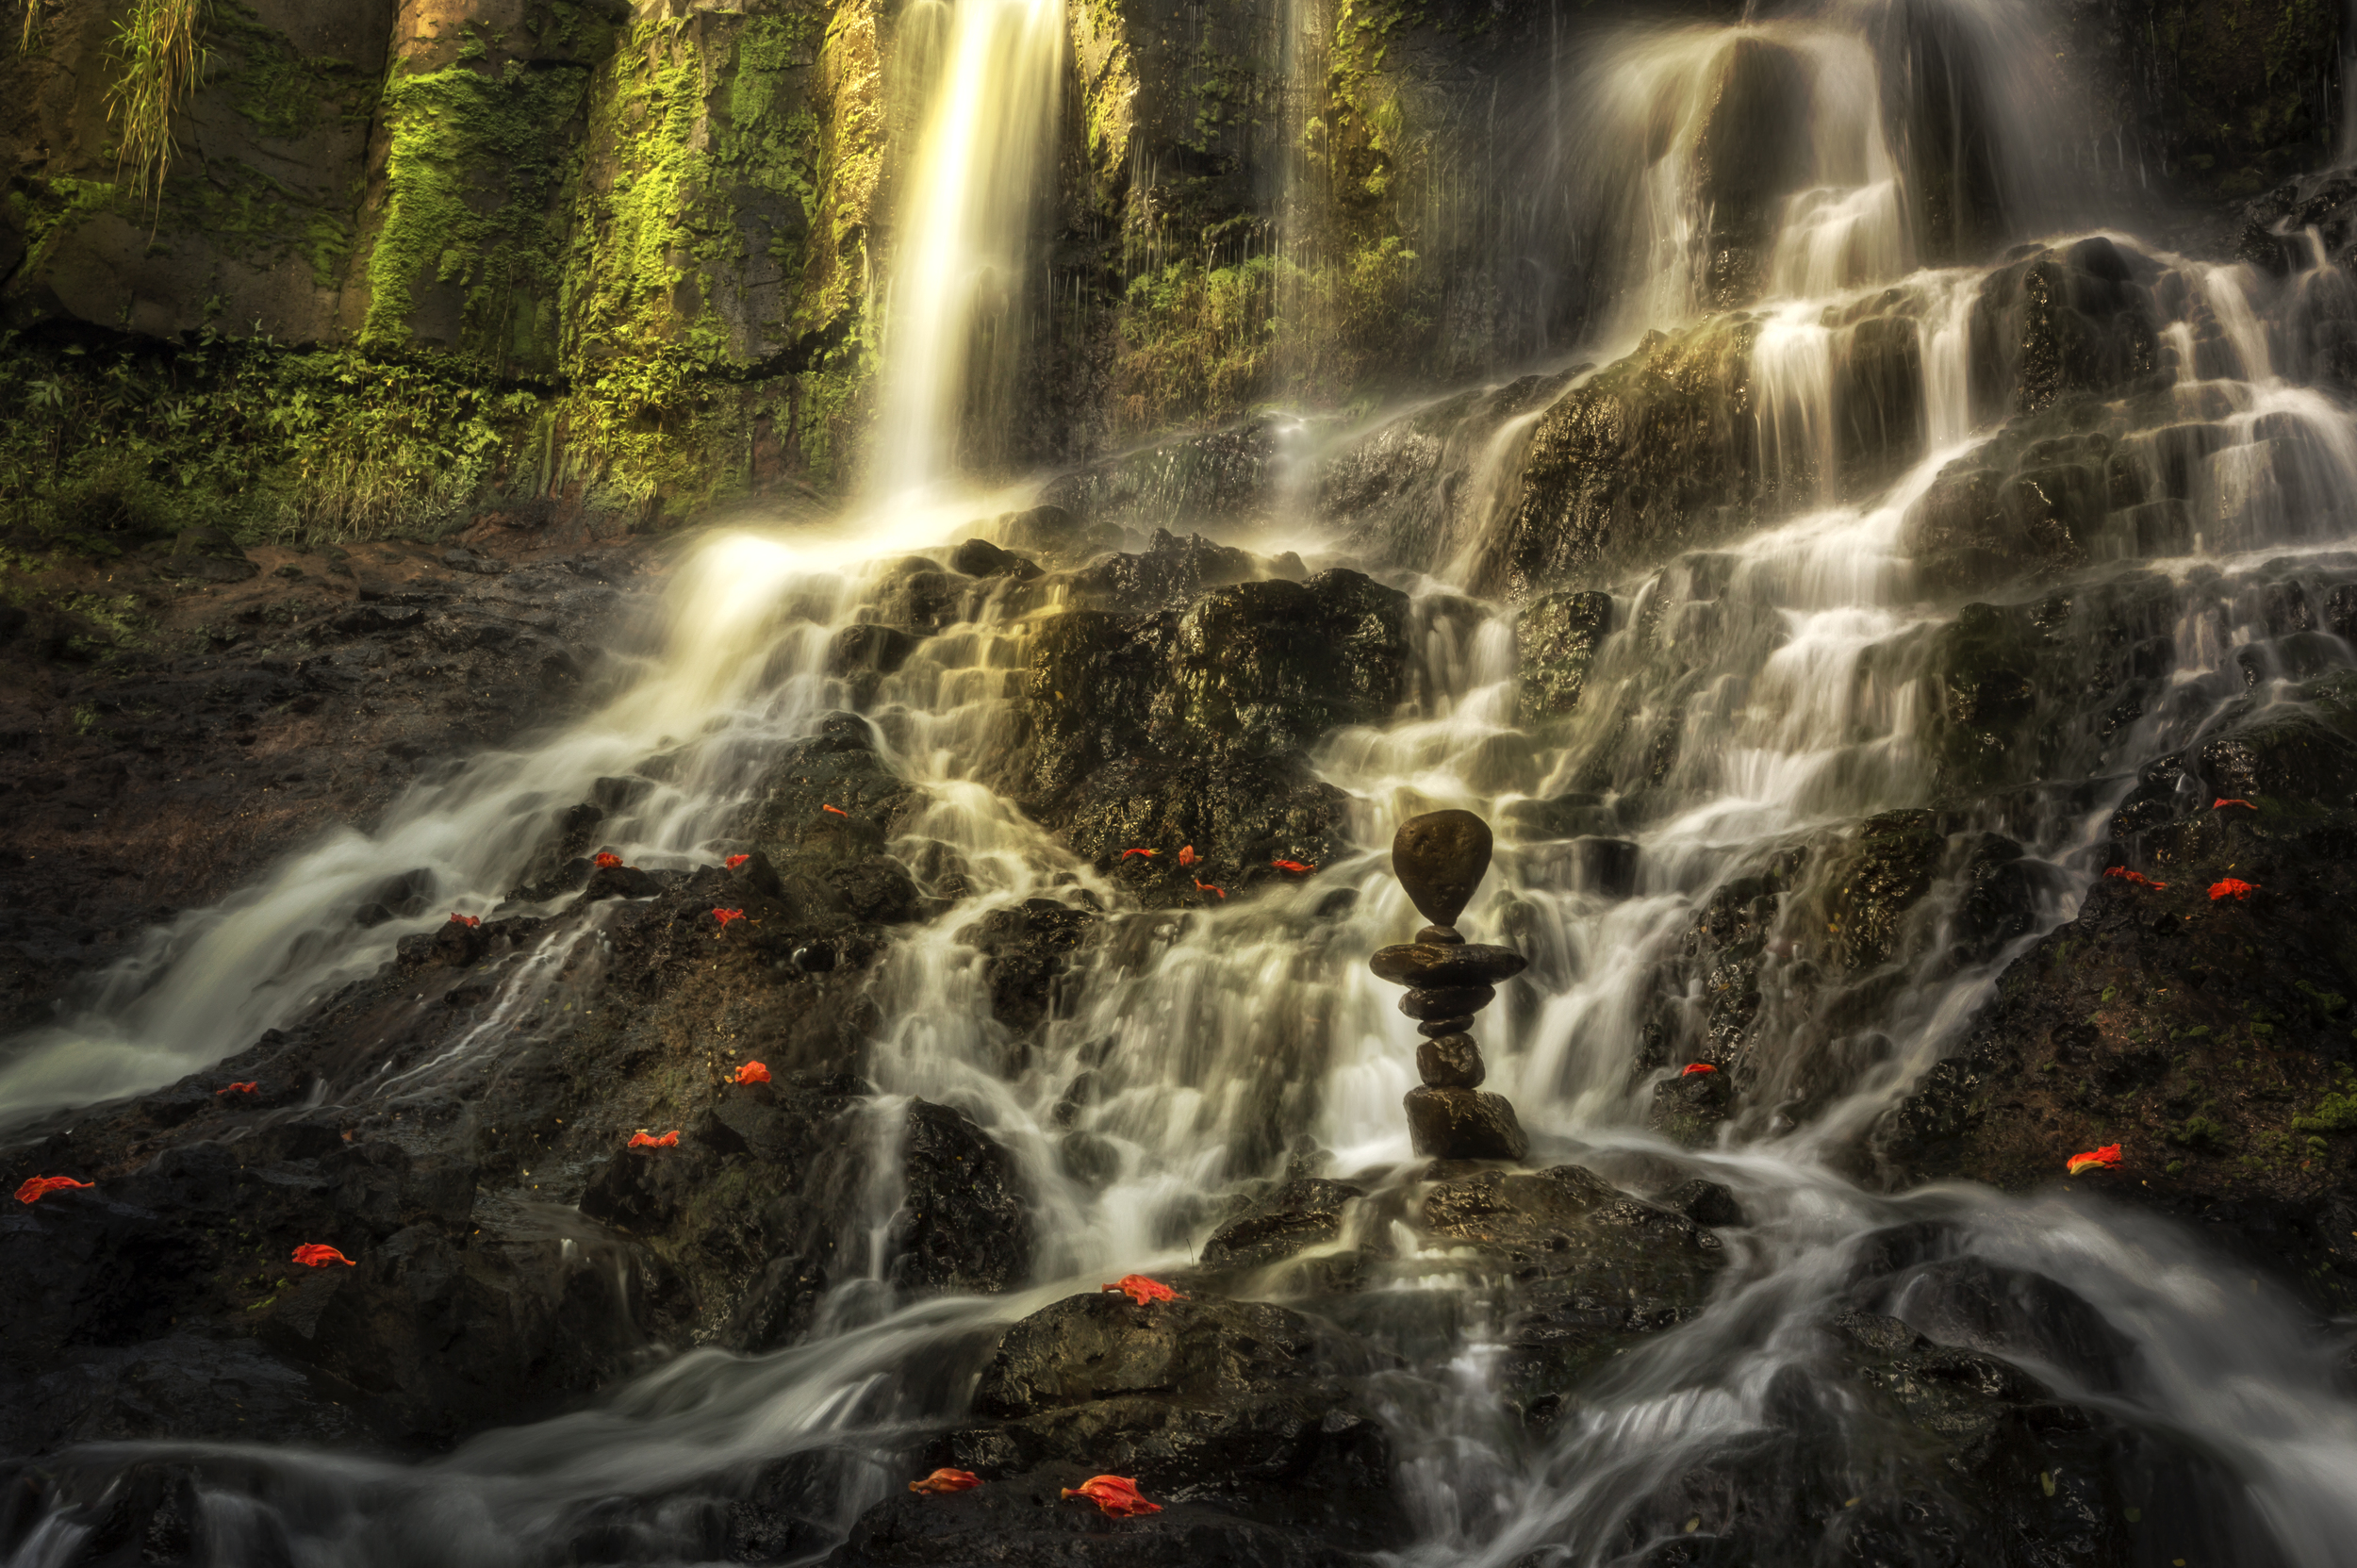 Maluhia (tranquility) - lower Hoopii Falls - Winner of the Steinhart Award; Art Kauai 2014, Kauai Society of Artists